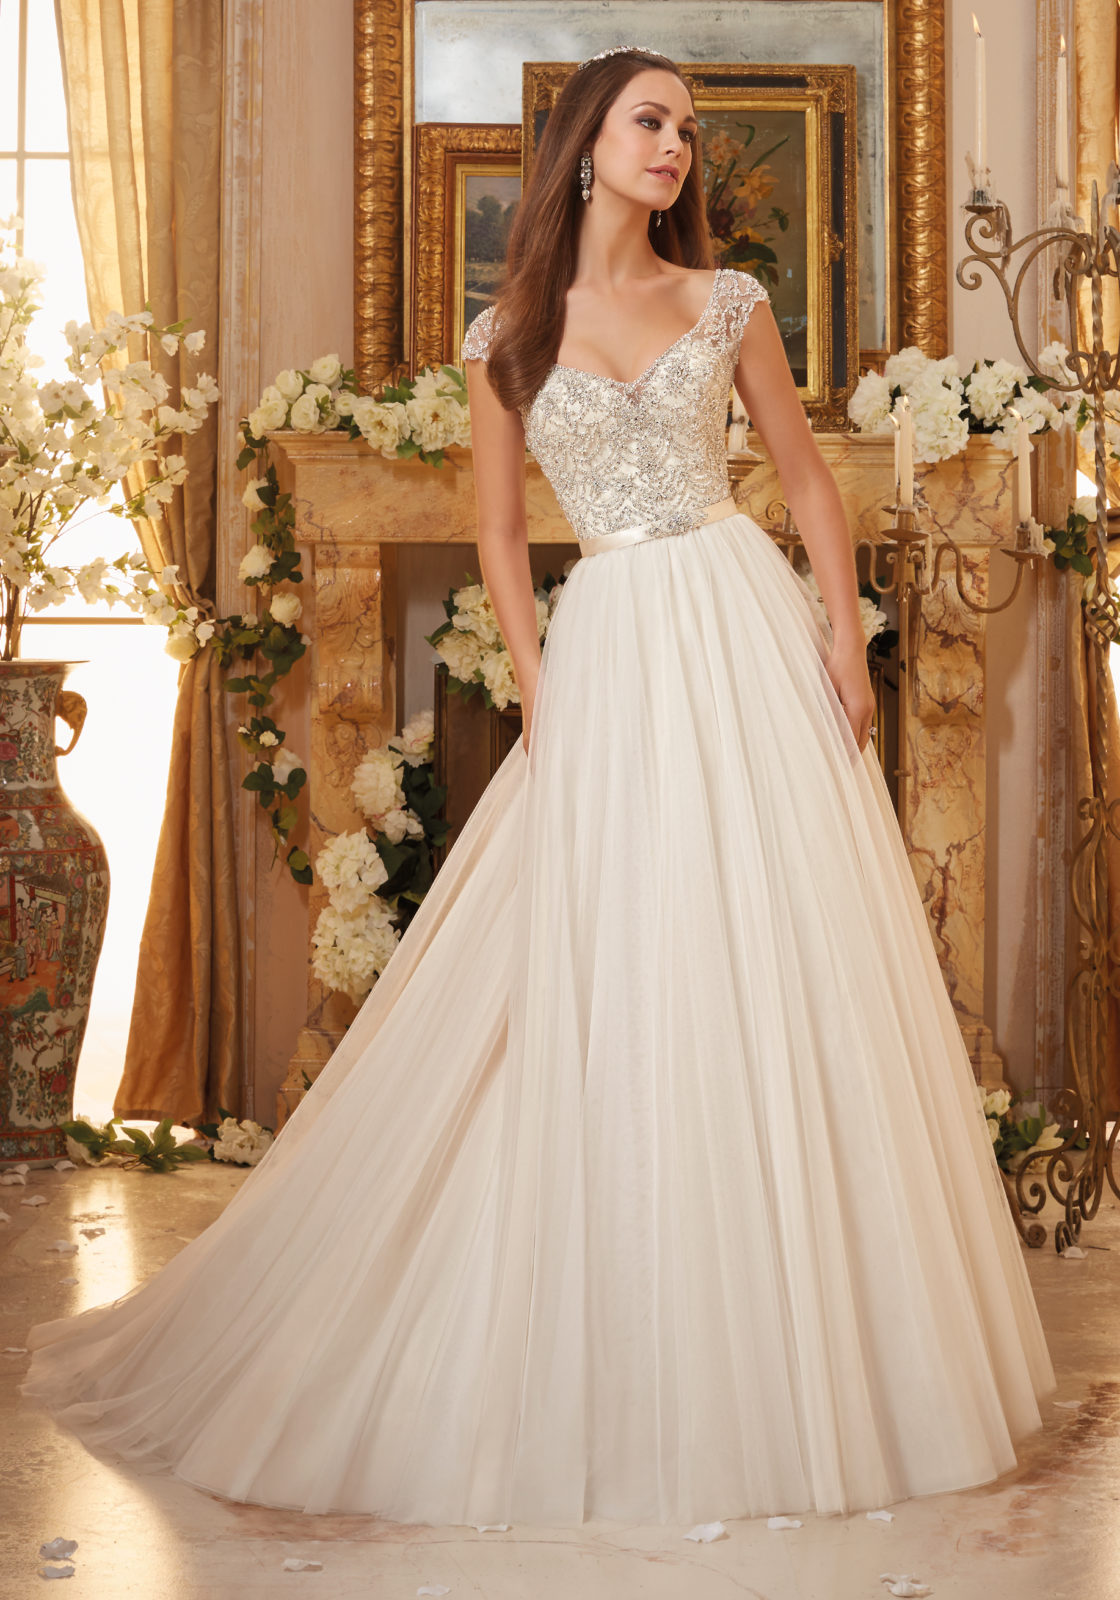 ball gown style wedding dresses photo - 1